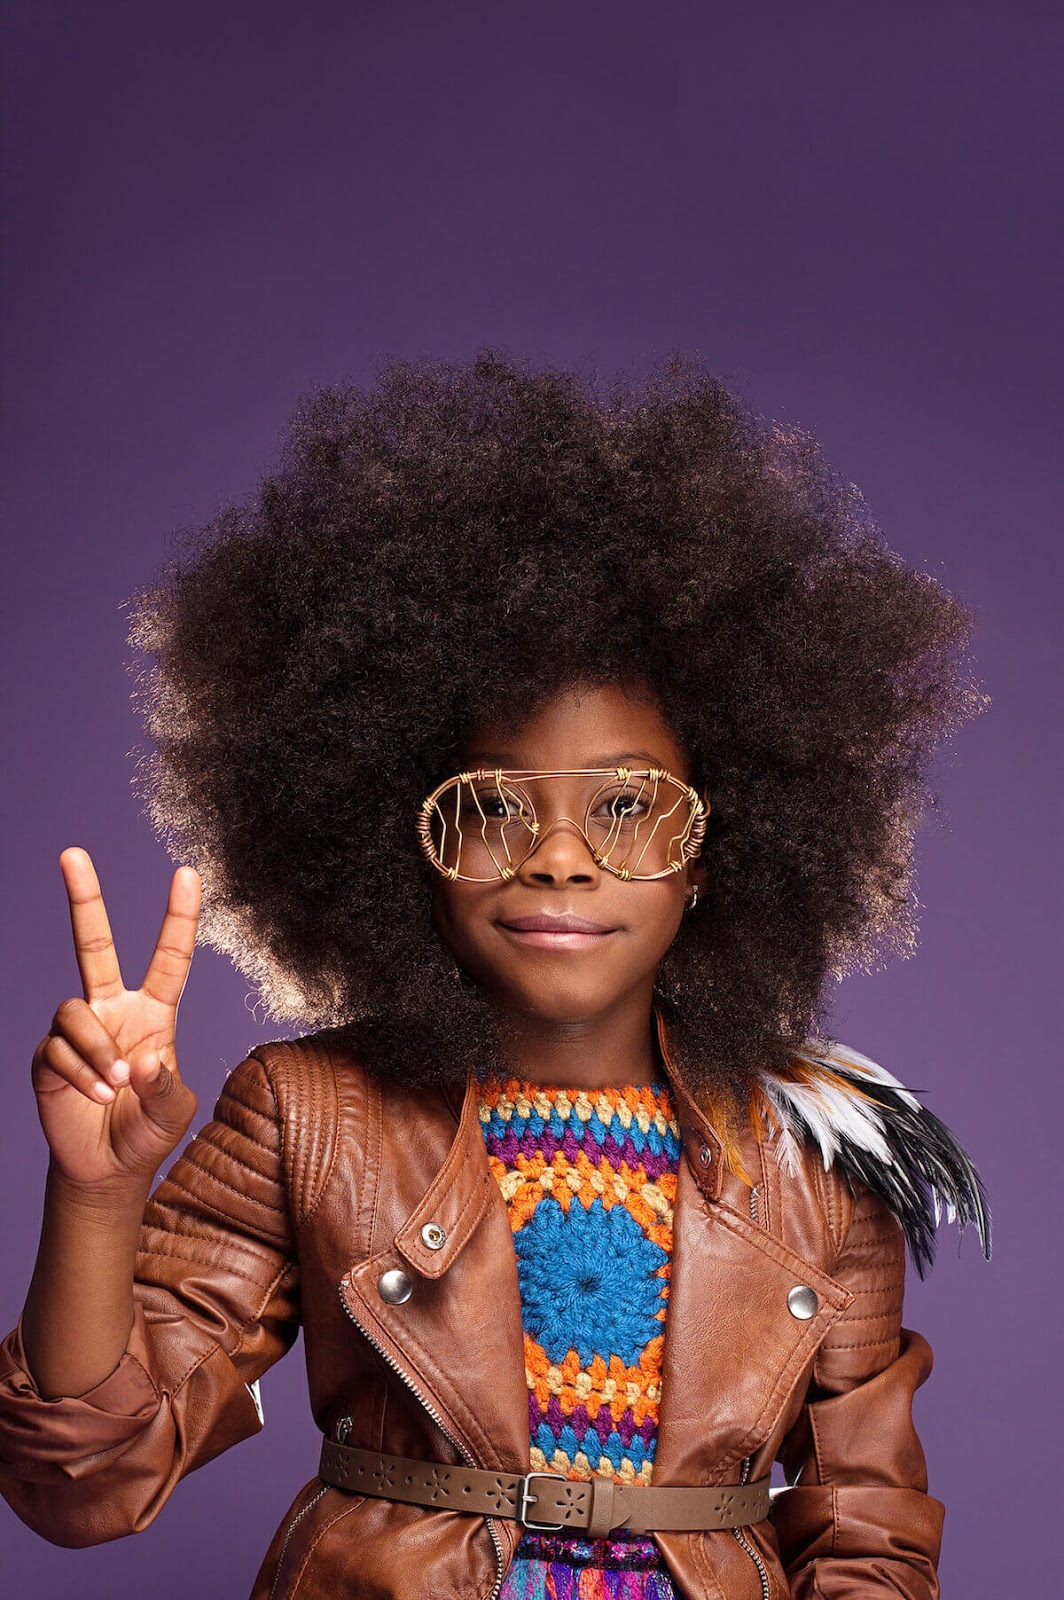 Breathtaking Portraits Of Girls With Natural Afro Hair